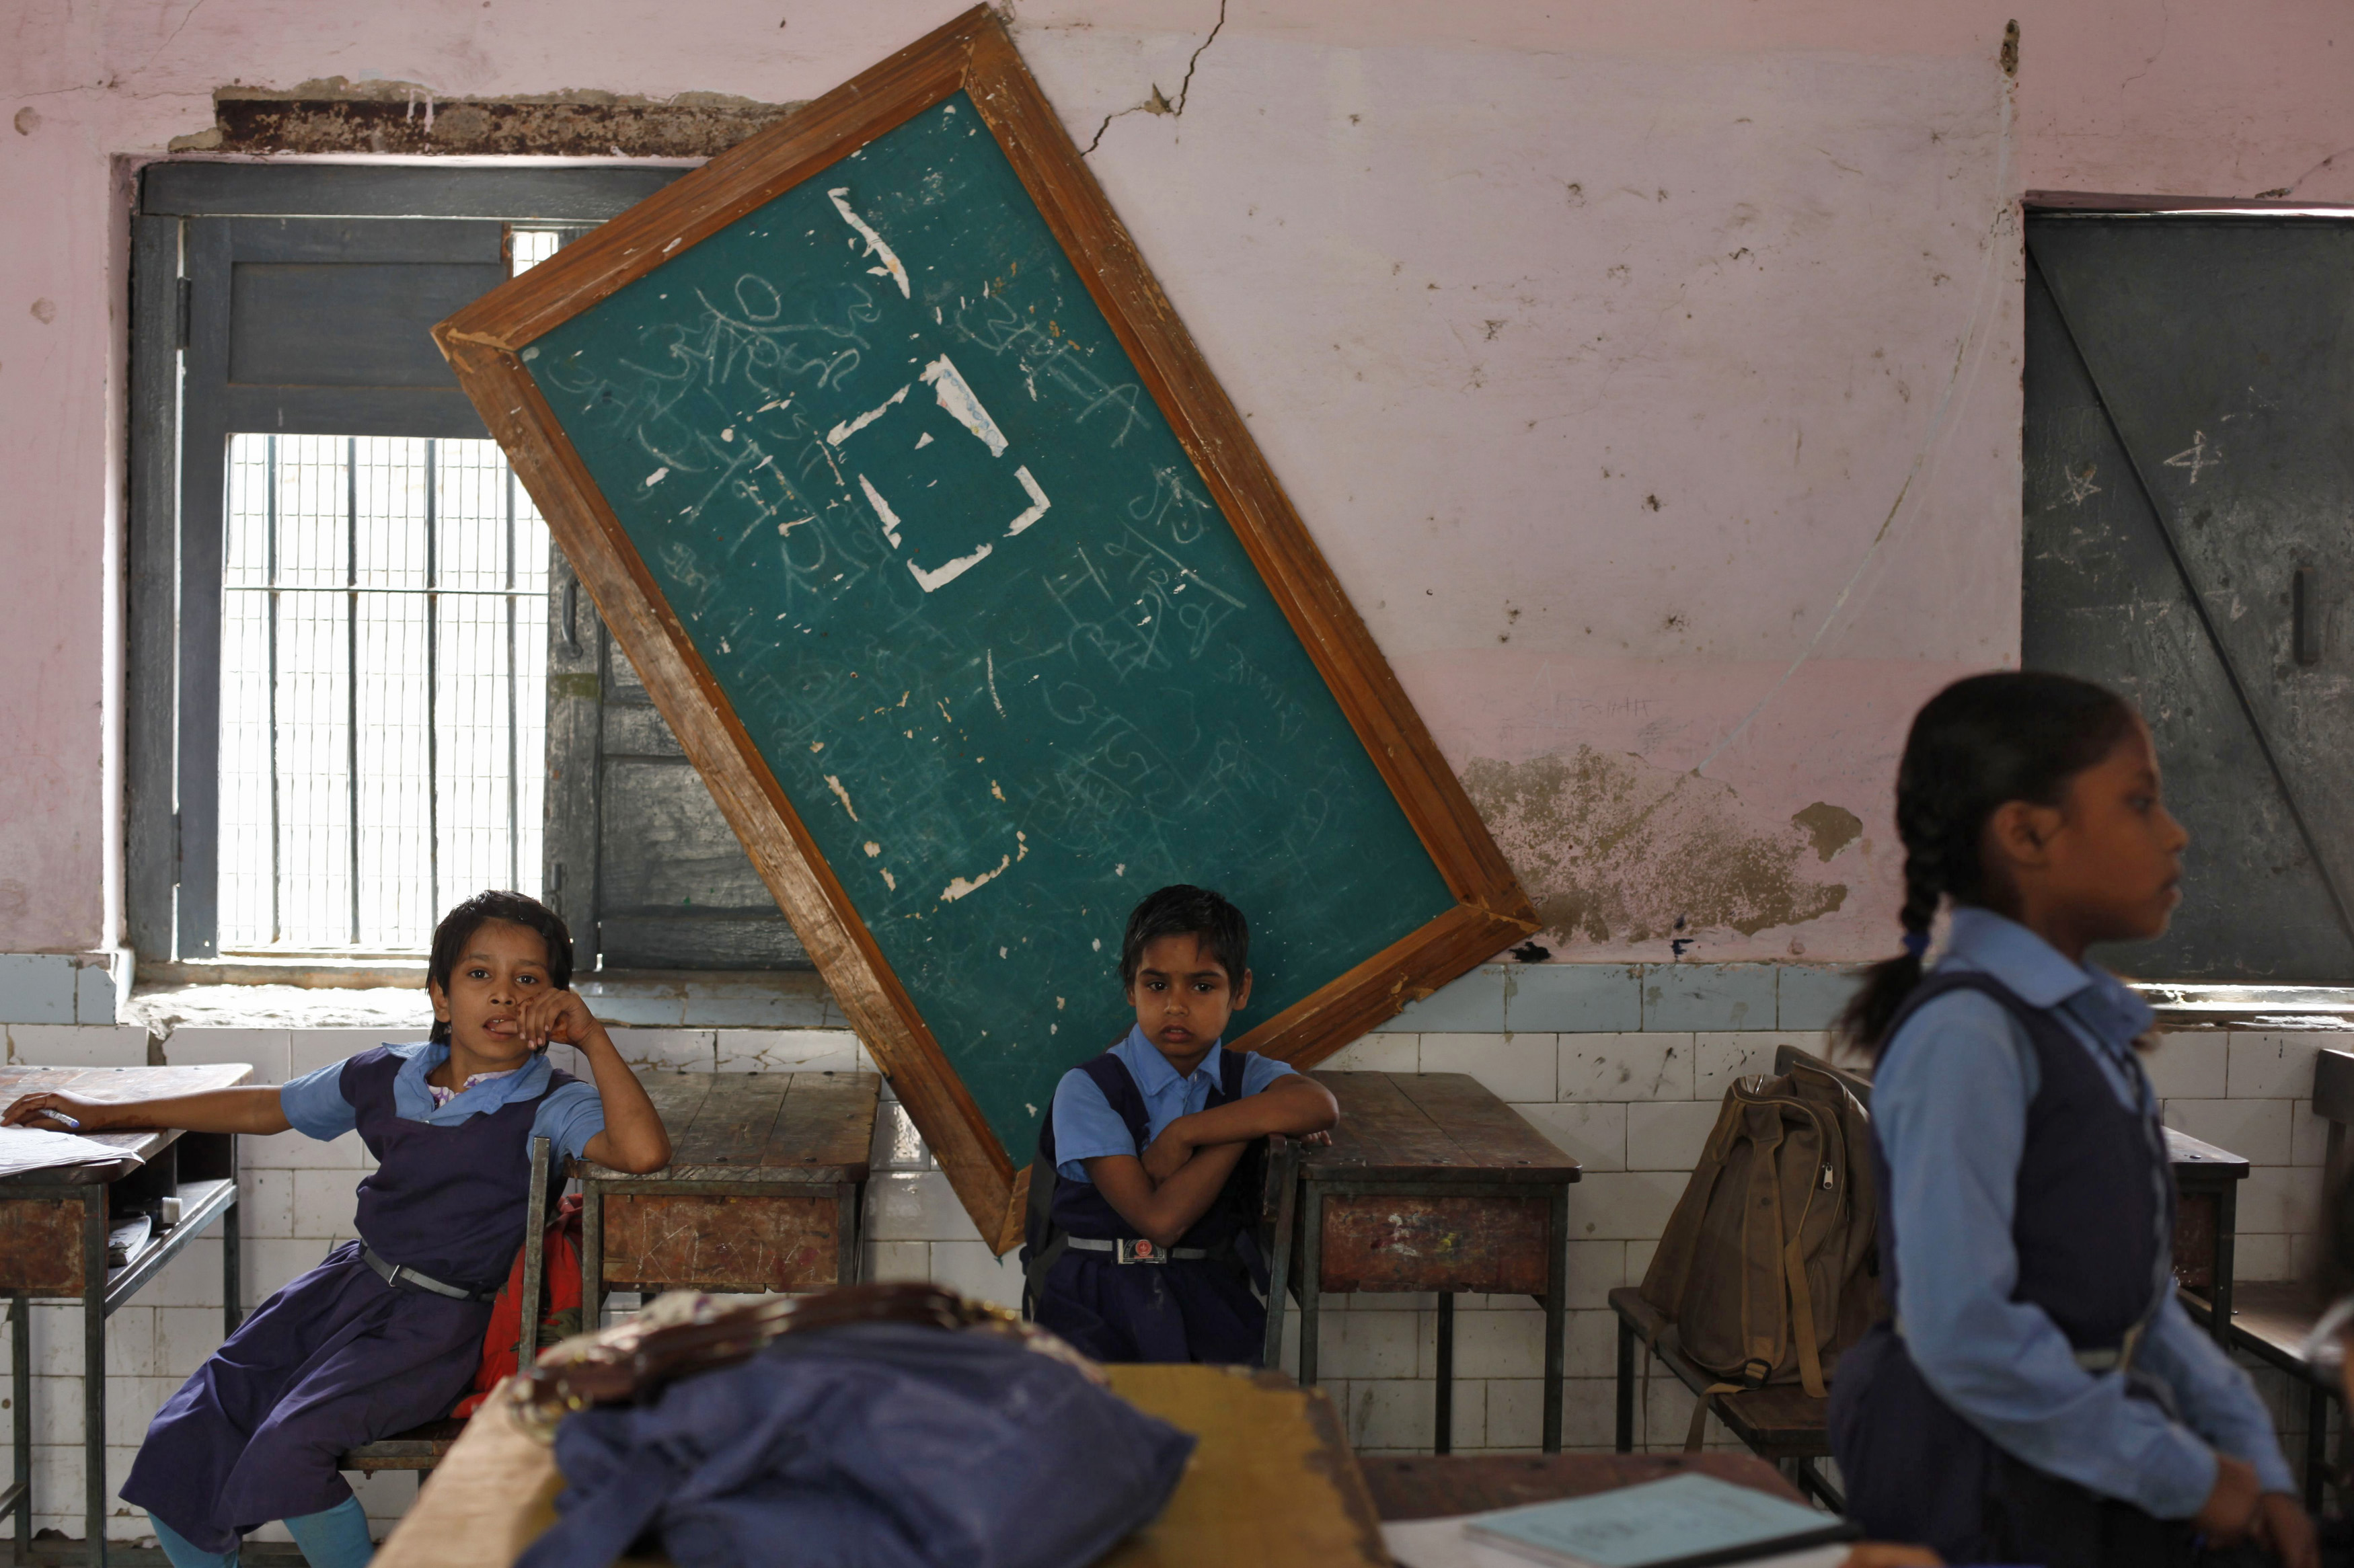 Schoolgirls sit inside their classroom before collecting their free mid-day meals, being distributed by a government-run primary school, in New Delhi May 8, 2013. India may soon pass a new law to give millions more people cheap food, fulfilling an election promise of the ruling Congress party that could cost about $23 billion a year and take a third of annual grain production. The National Food Security Bill, which aims to feed 70 percent of the population, could widen India's already swollen budget deficit next year, increasing the risk to its coveted investment-grade status.